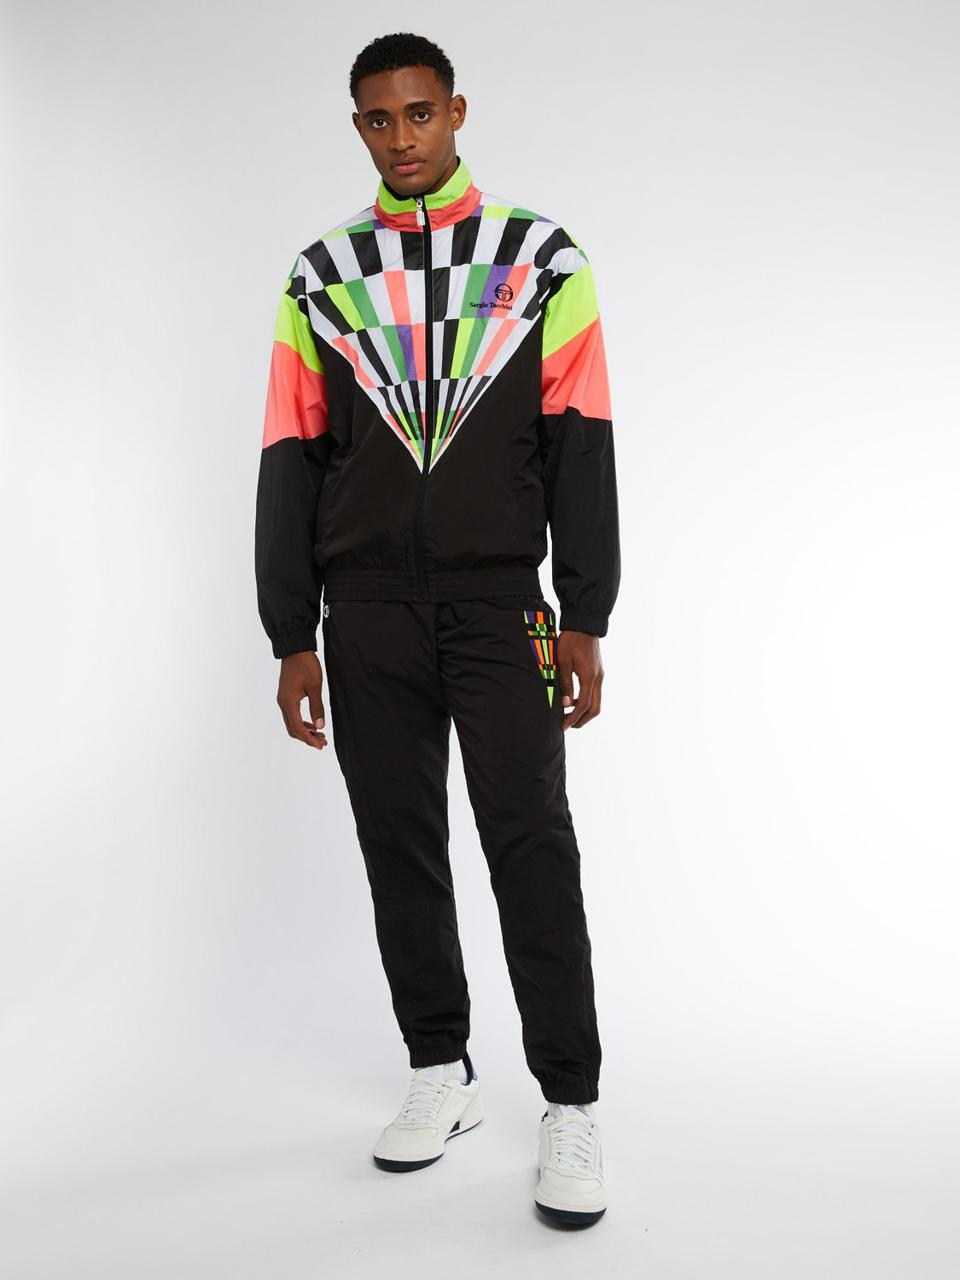 The two-piece nylon tracksuit set from Sergio Tacchini features a multicolor Camporese motif on the jacket and on the slim flit track bottoms.